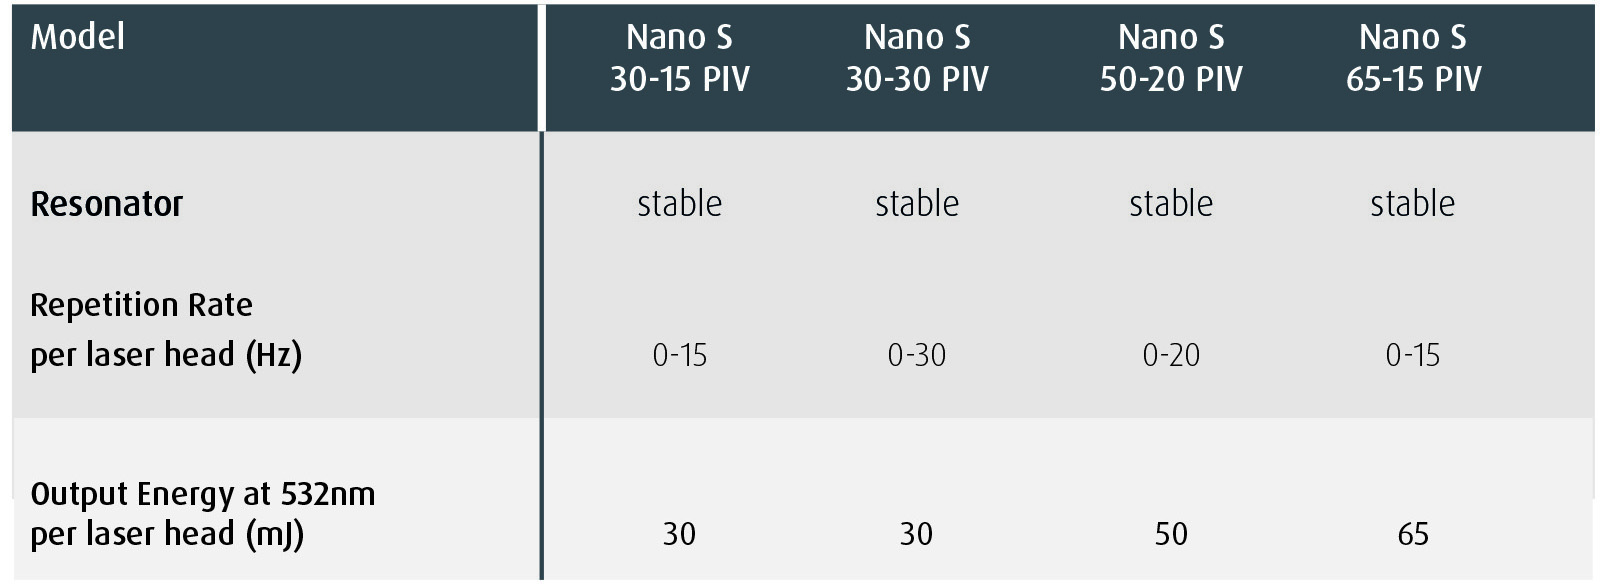 Nano S PIV Specification Highlights